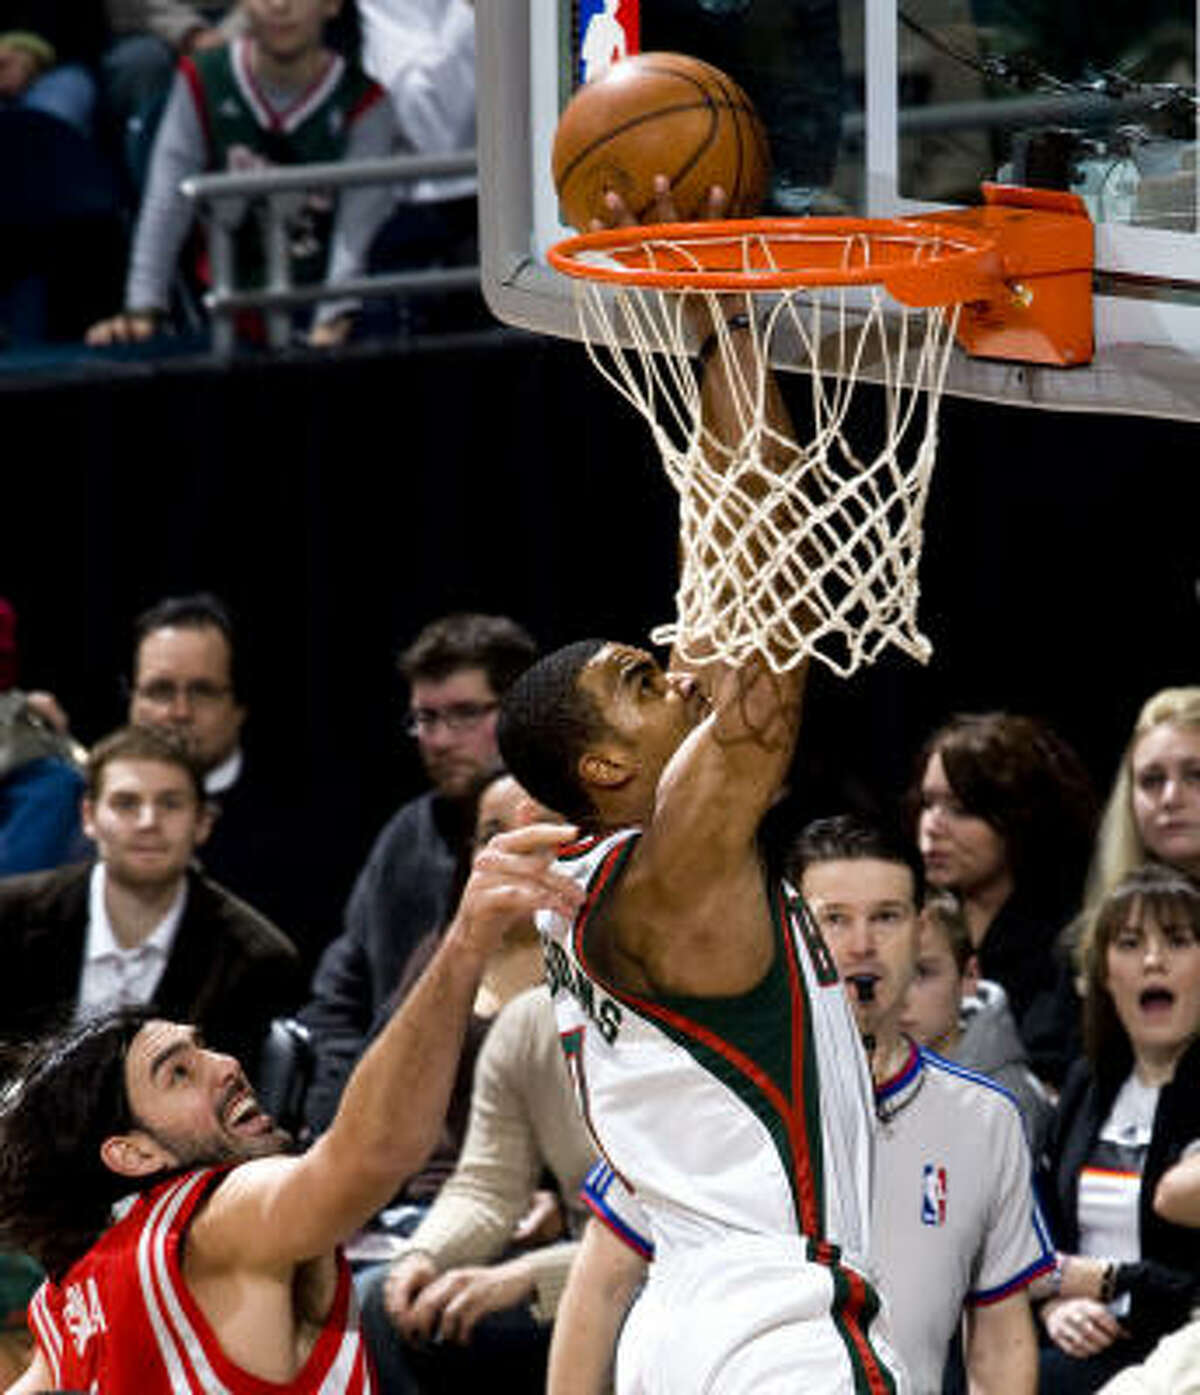 Bucks guard Ramon Sessions, right, puts up a shot against Luis Scola in the first half. Sessions scored a game-high 26 points in 33 minutes.